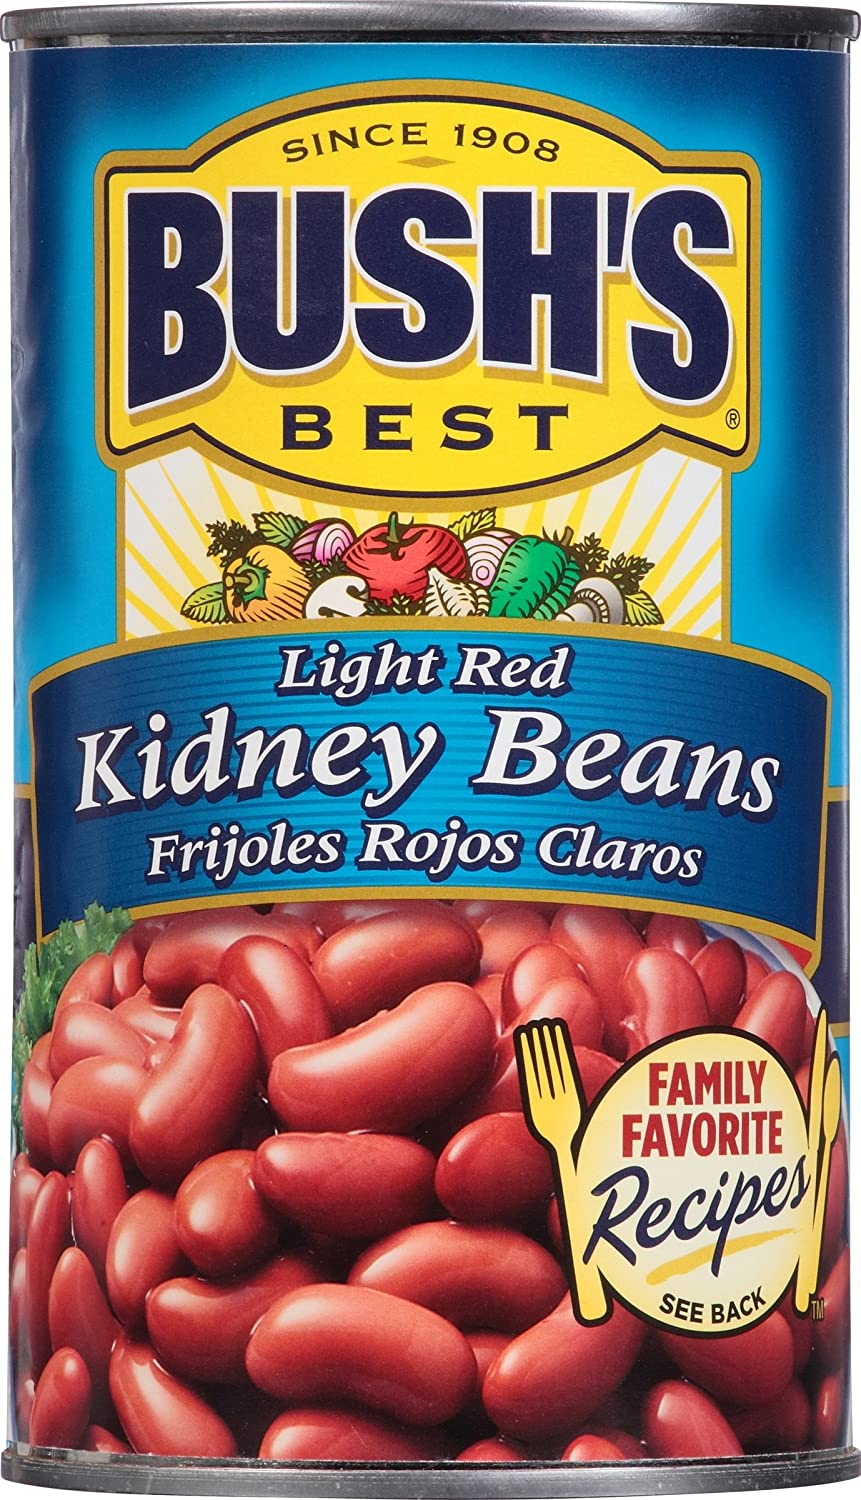 Amazon.com : Bushs Best Light Red Kidney Beans, 27 oz (12 cans) : Grocery & Gourmet Food